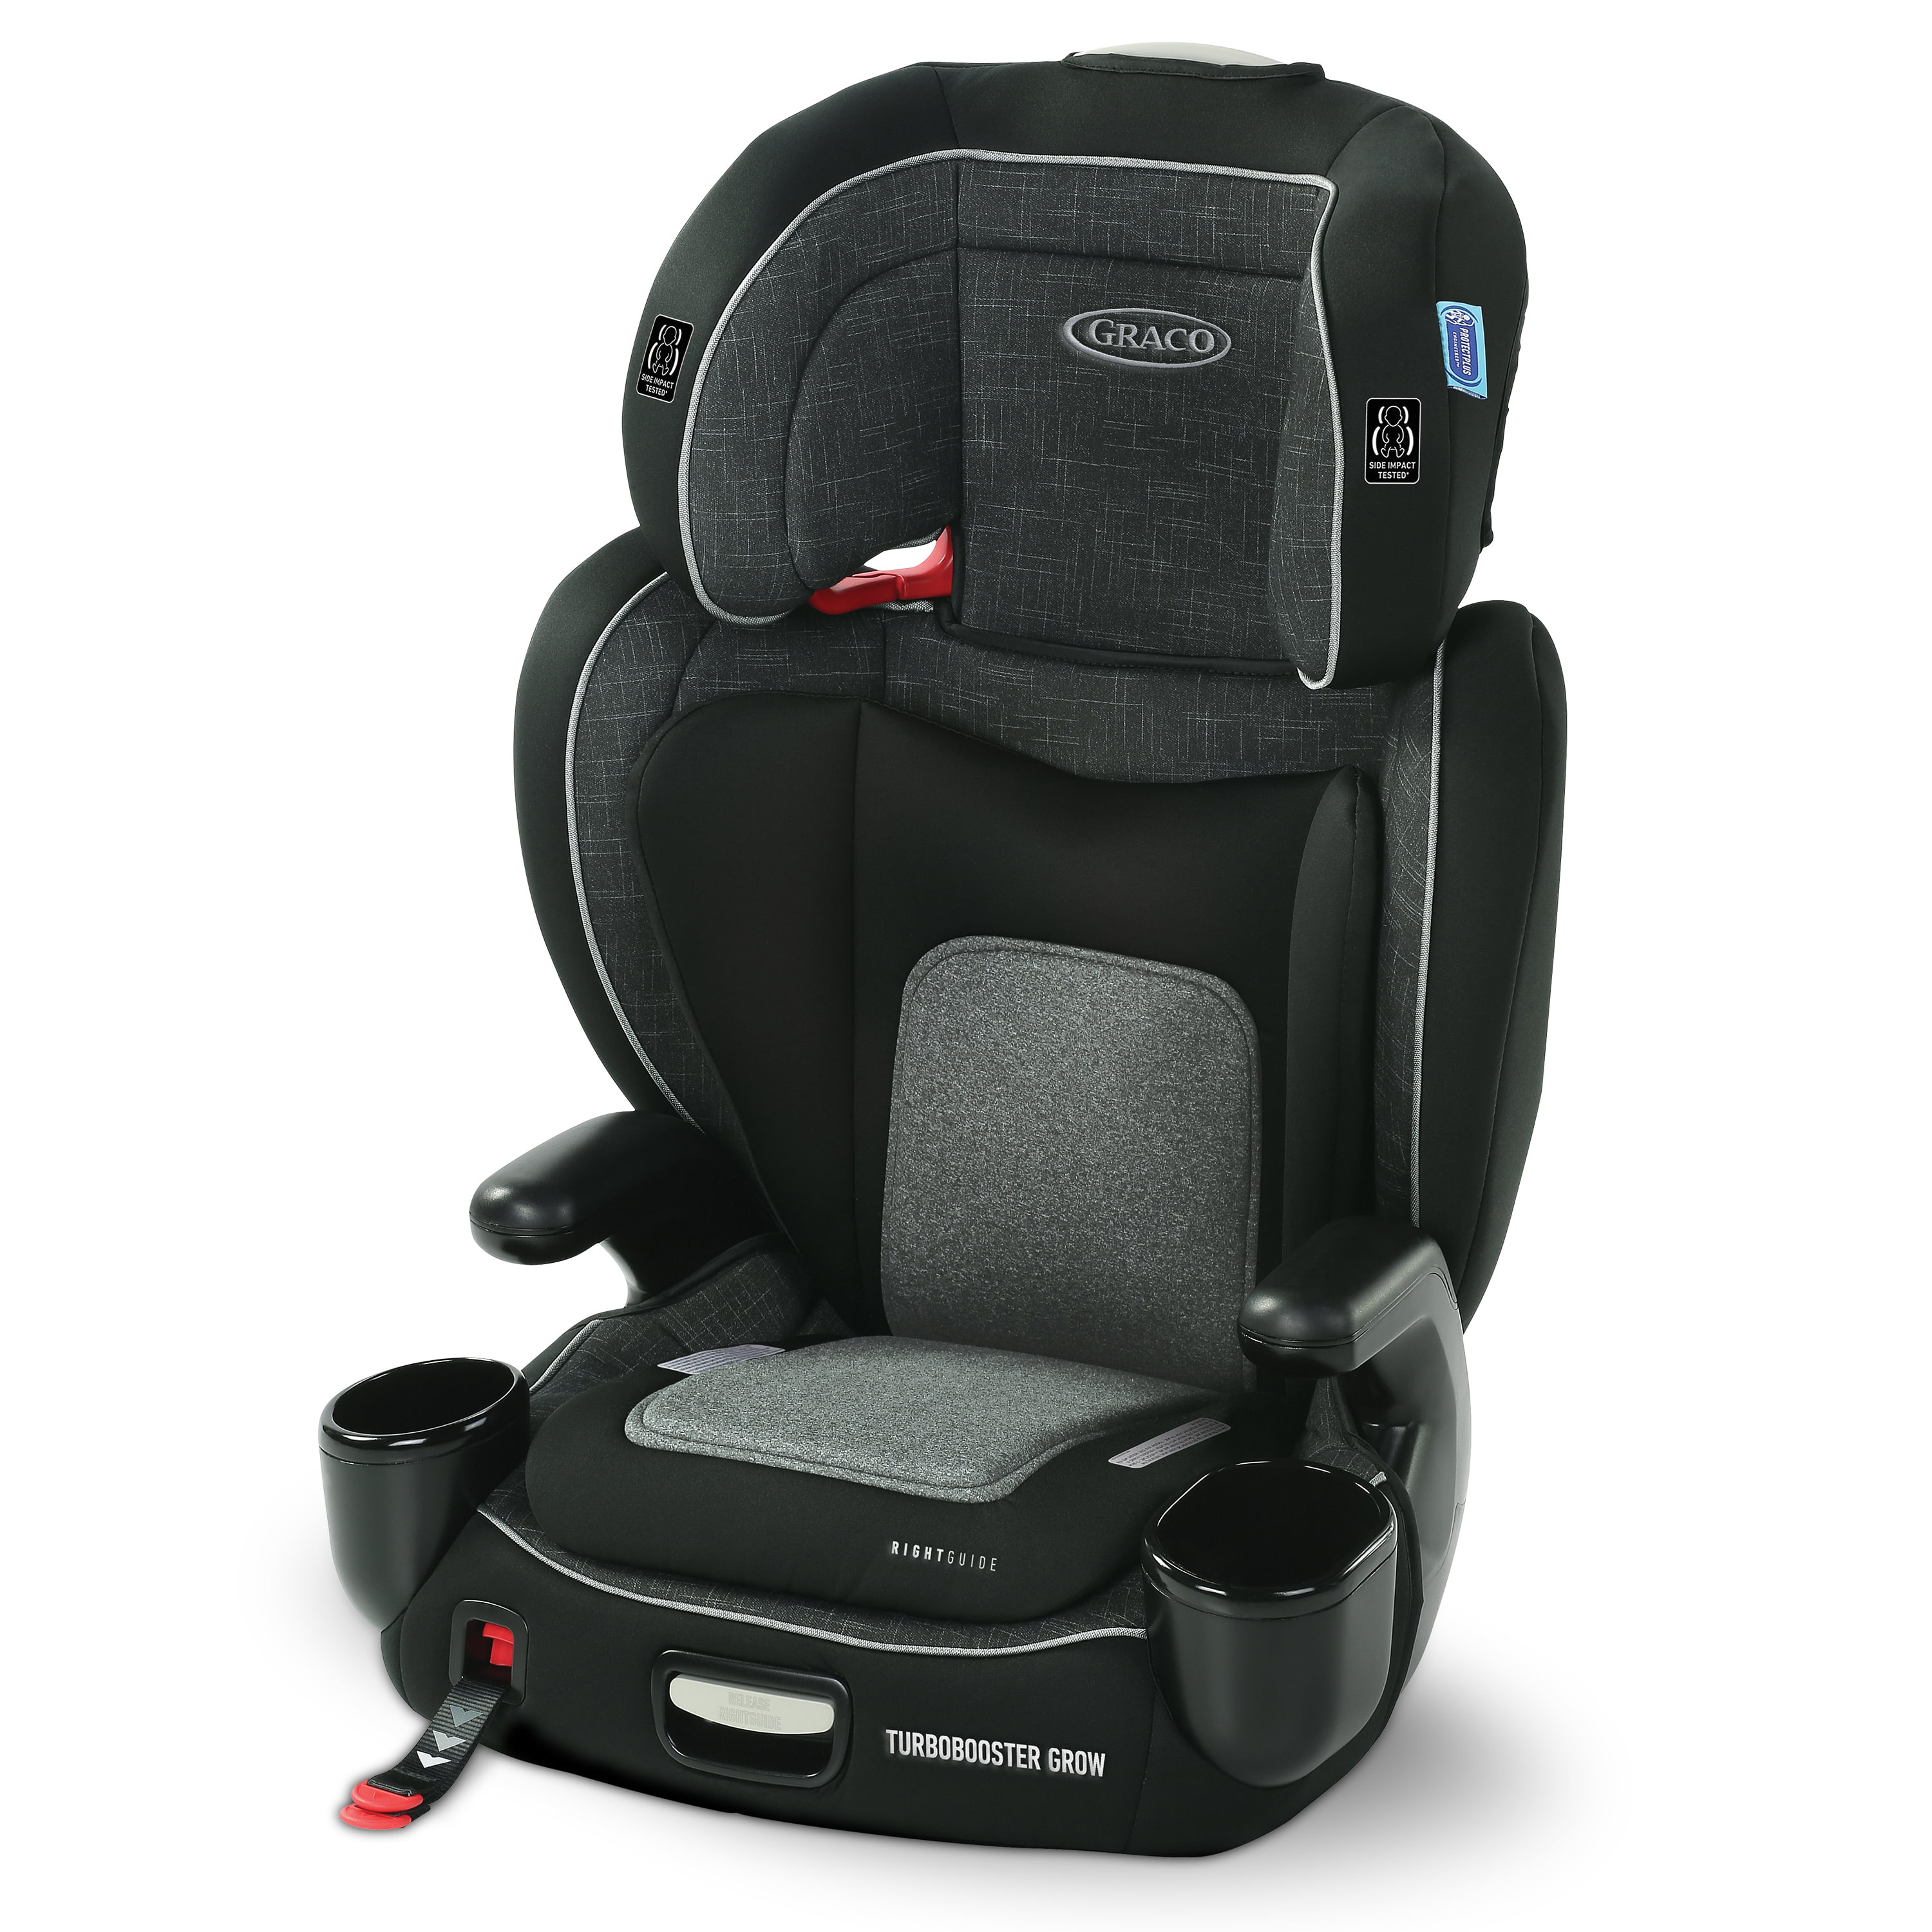 Graco TurboBooster Grow Highback Booster featuring RightGuide Seat Belt Trainer, West Point by Graco